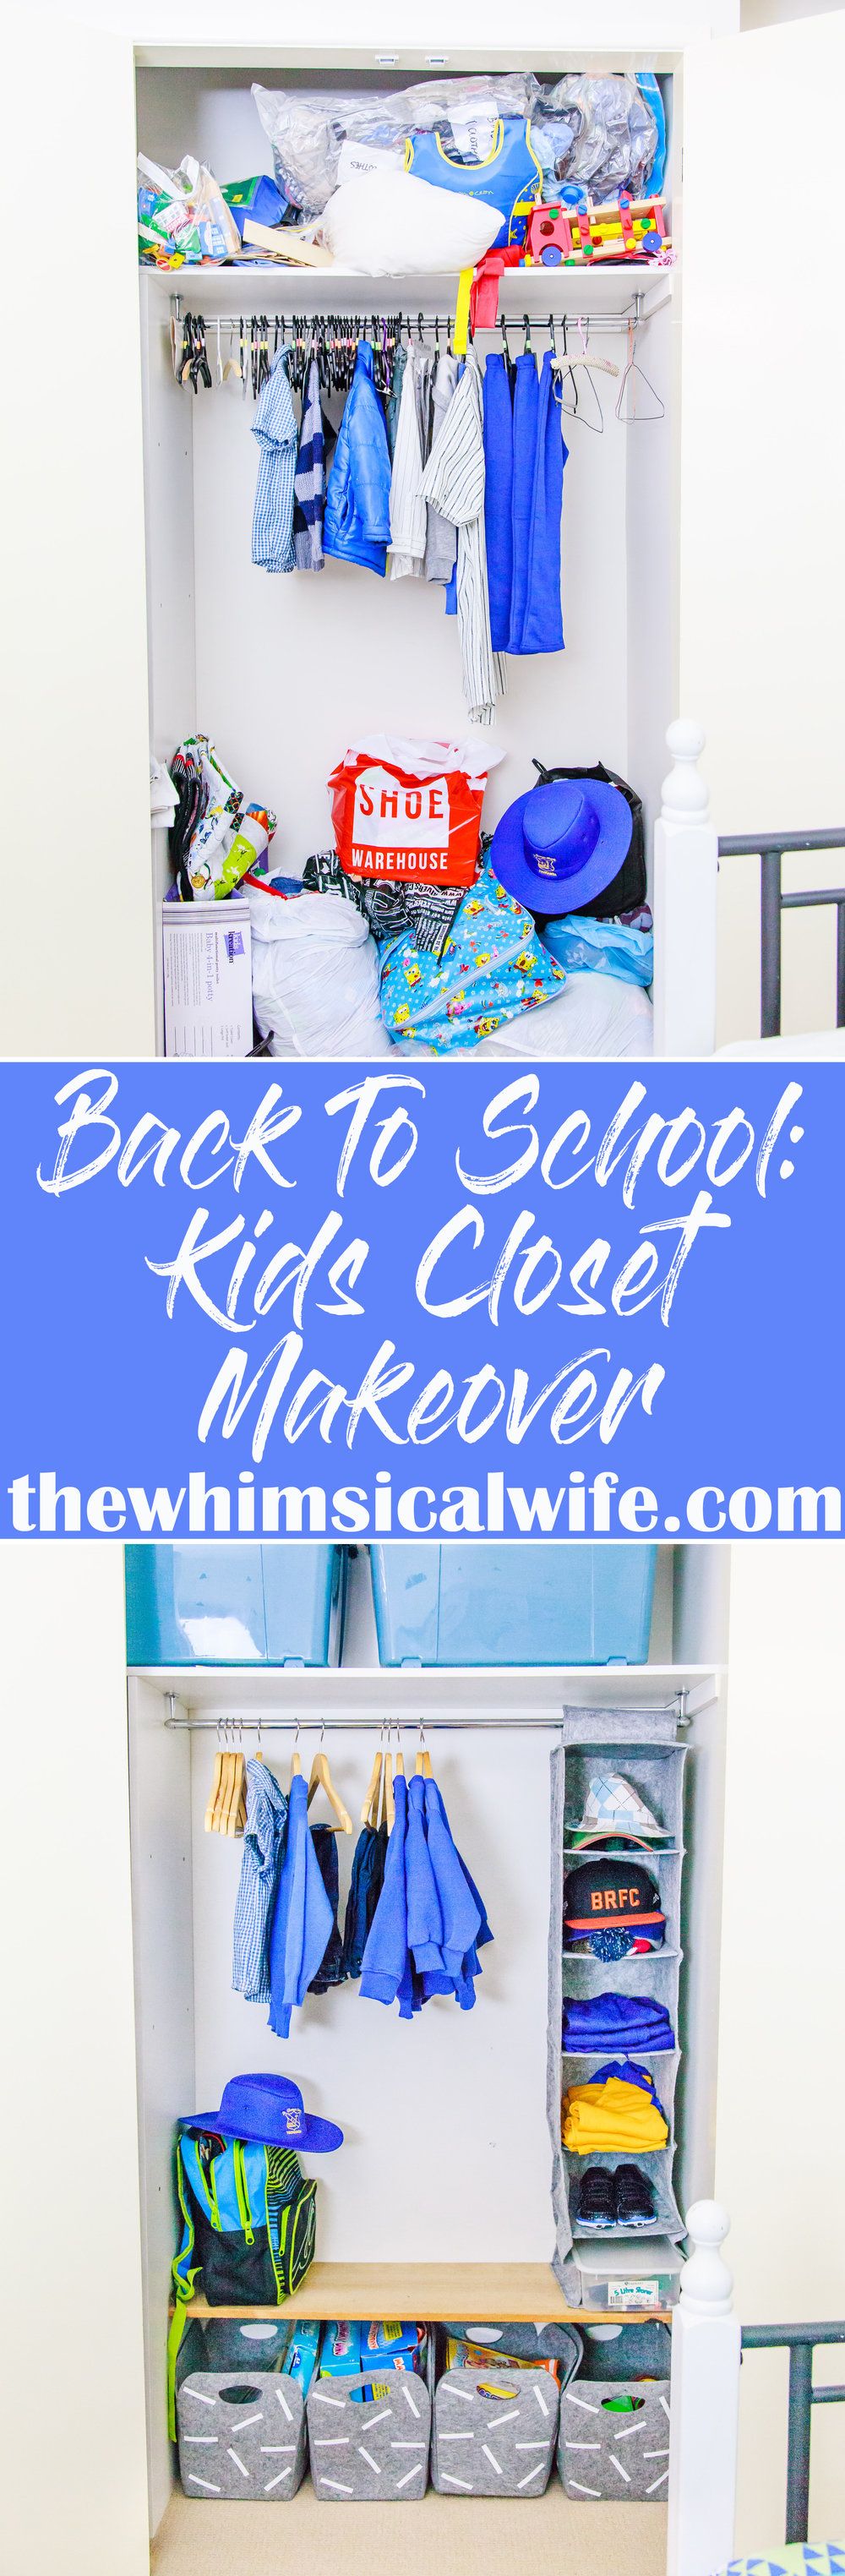 Back To School: Kids Closet Makeover For Under $50 + Video